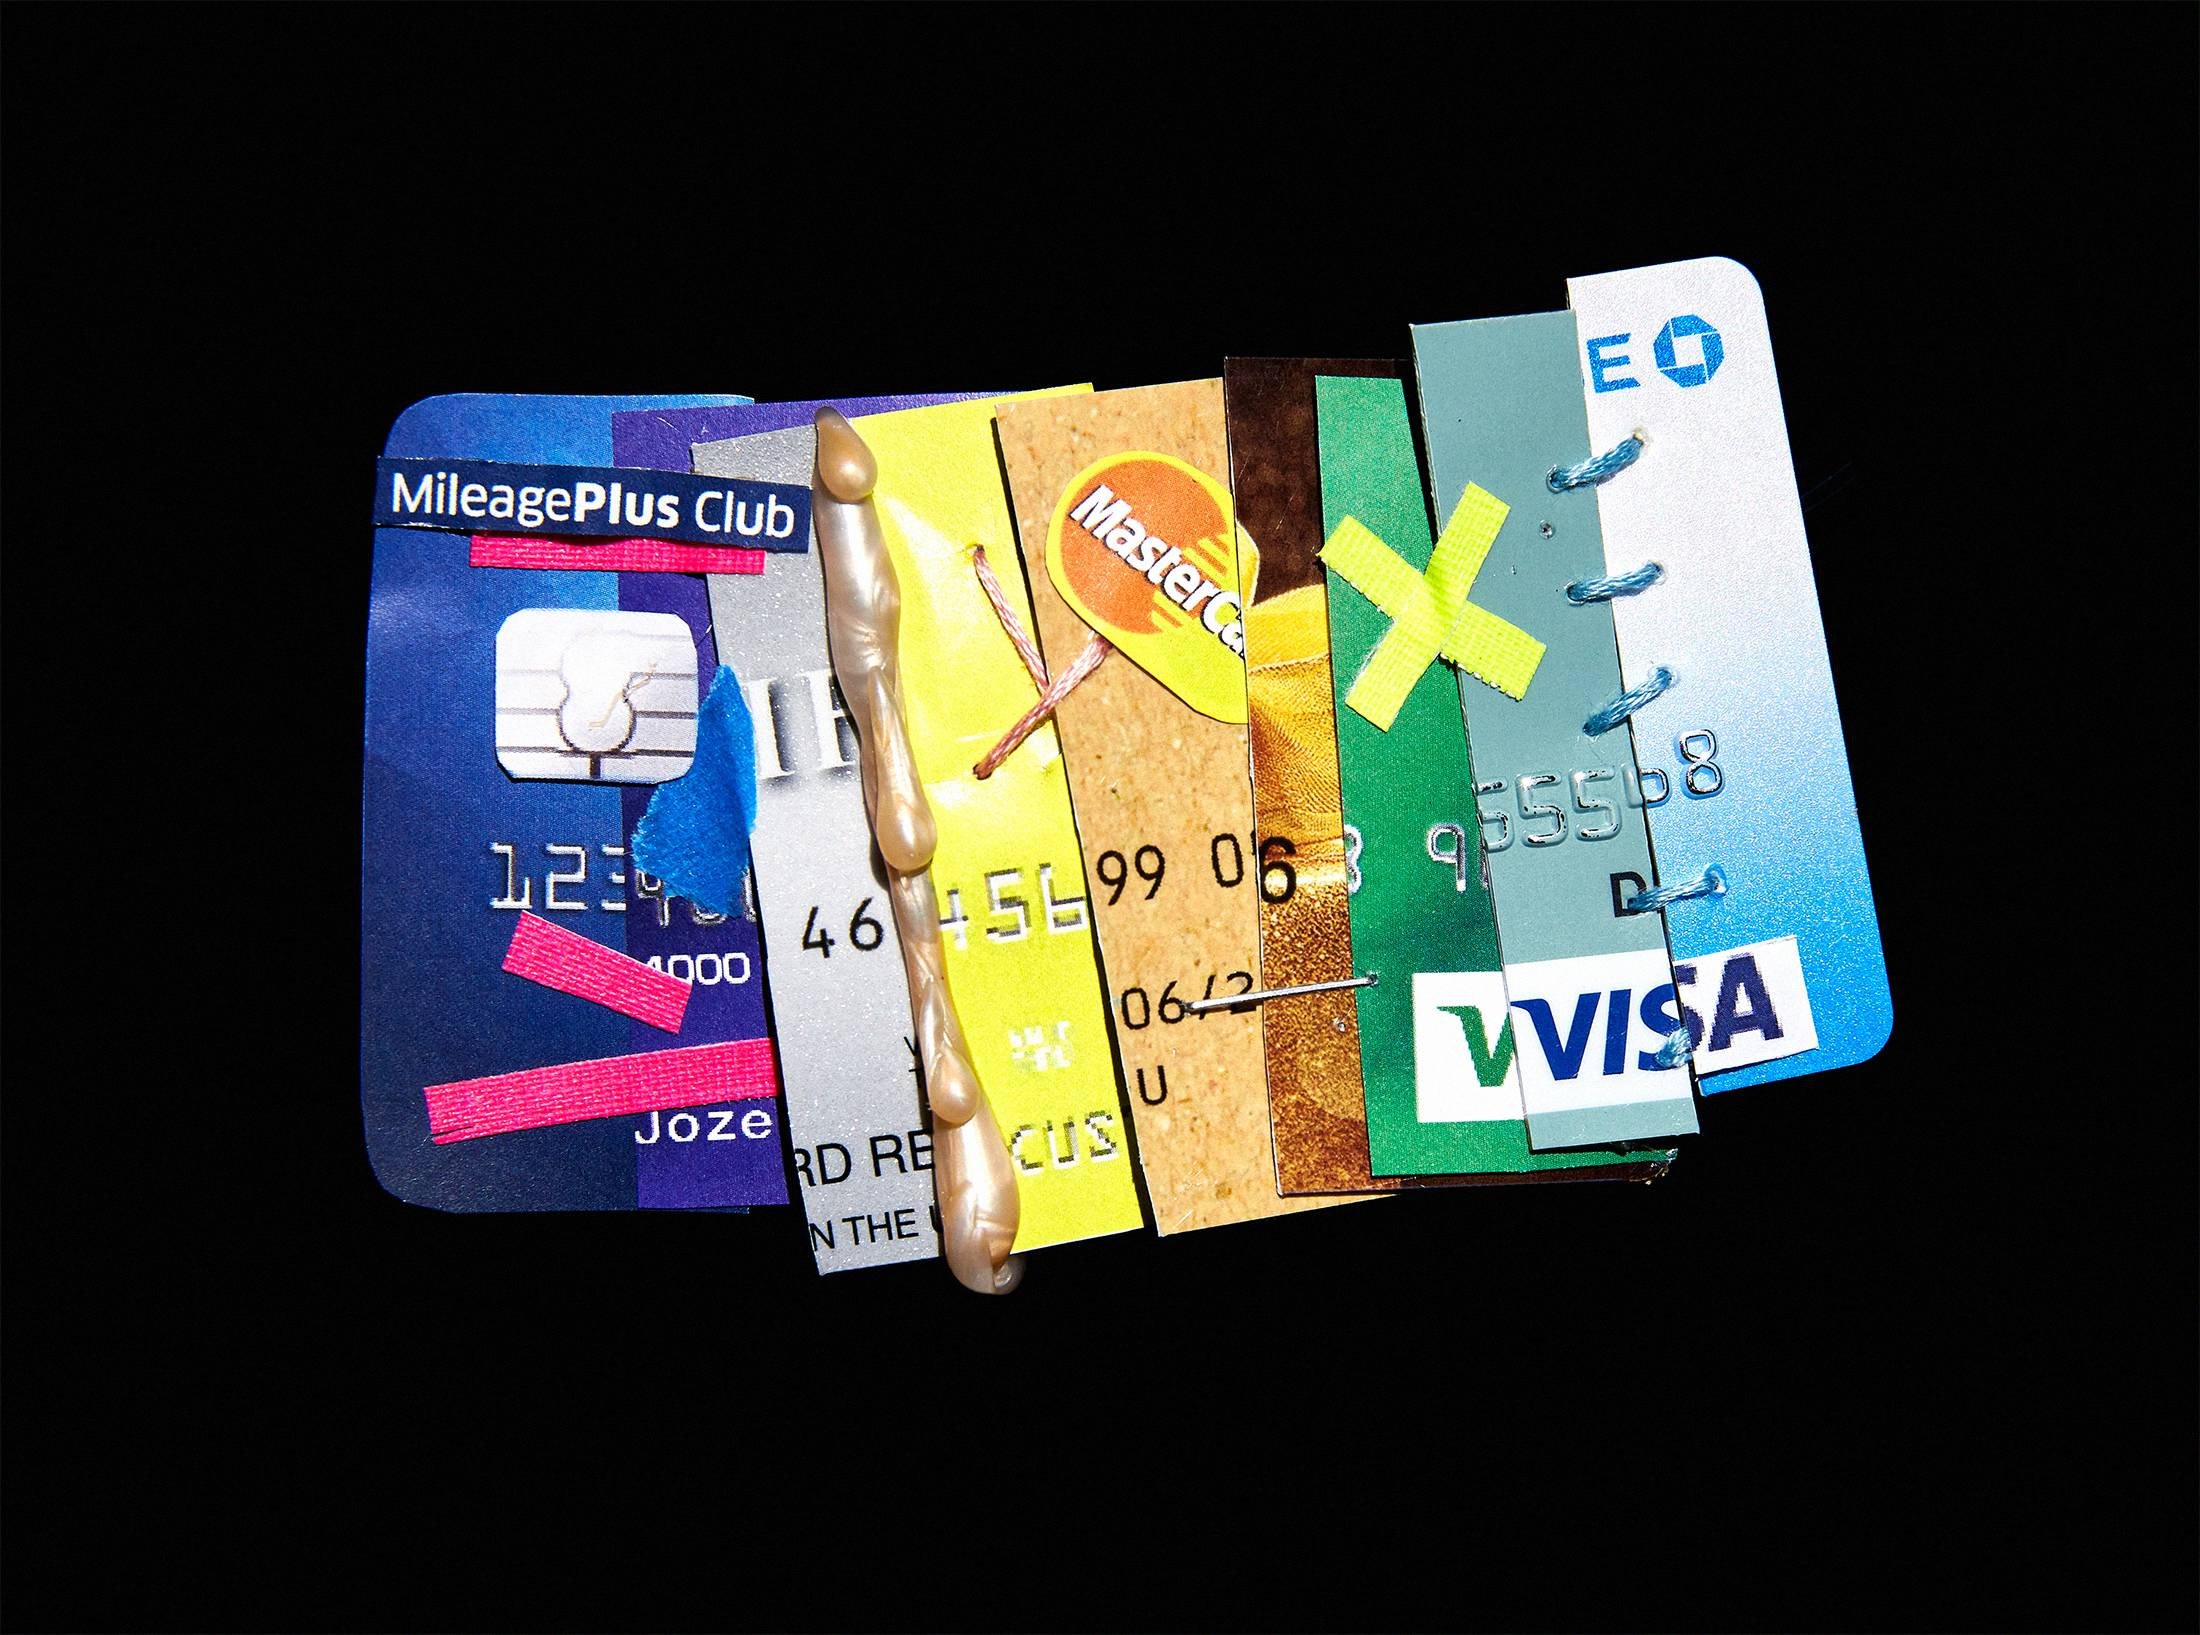 Scammers are constructing fake people to get real credit cards scammers are constructing fake people to get real credit cards bloomberg reheart Gallery